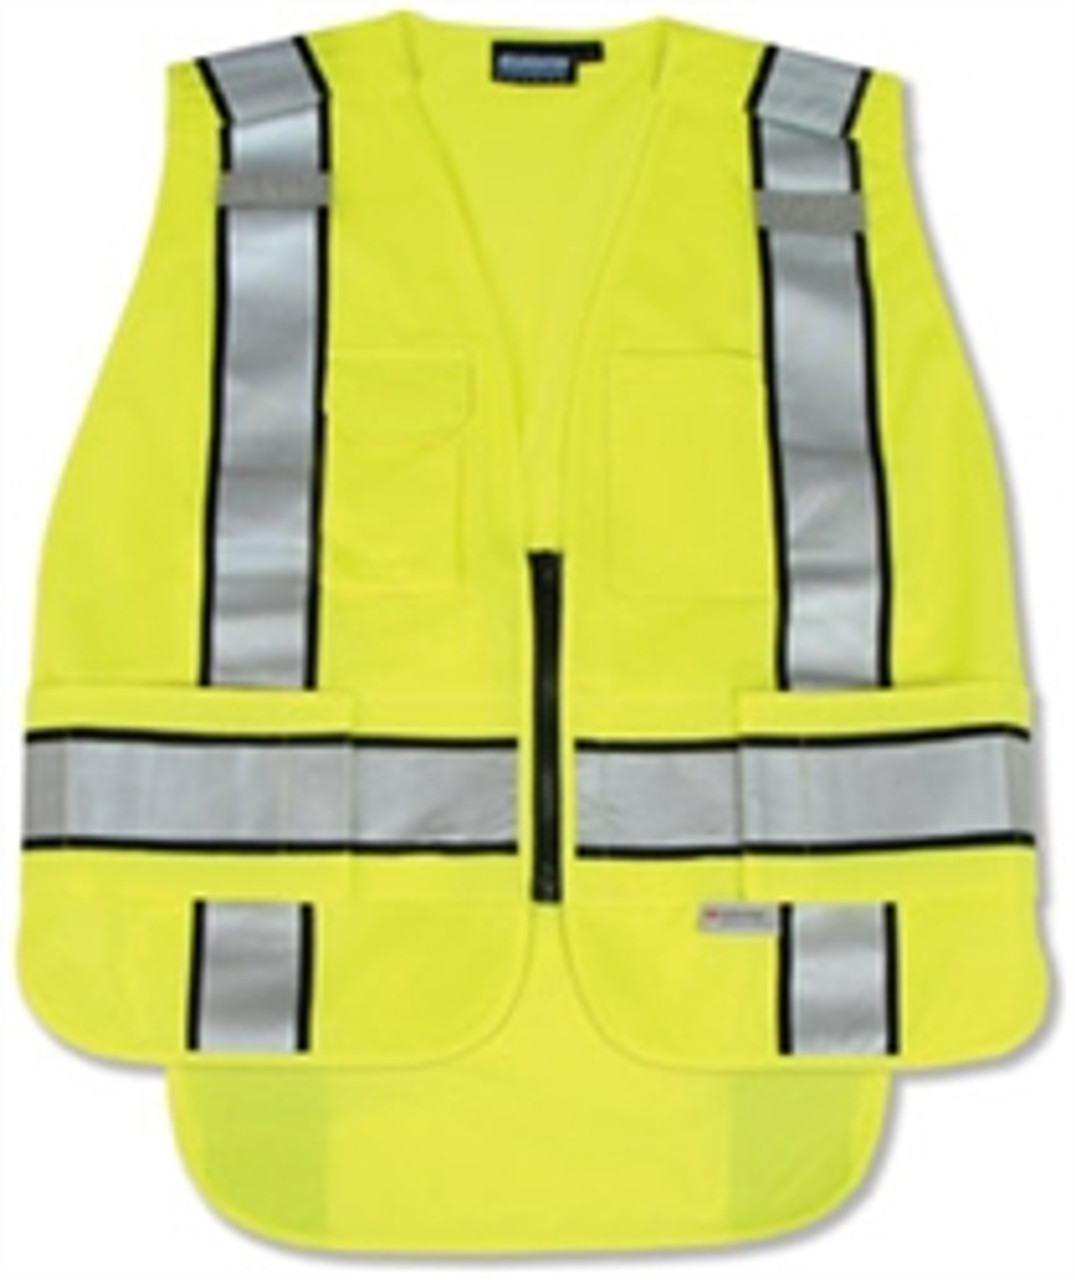 5 Point Break-Away ANSI 207 Public Safety Vest Yellow - ERB S368